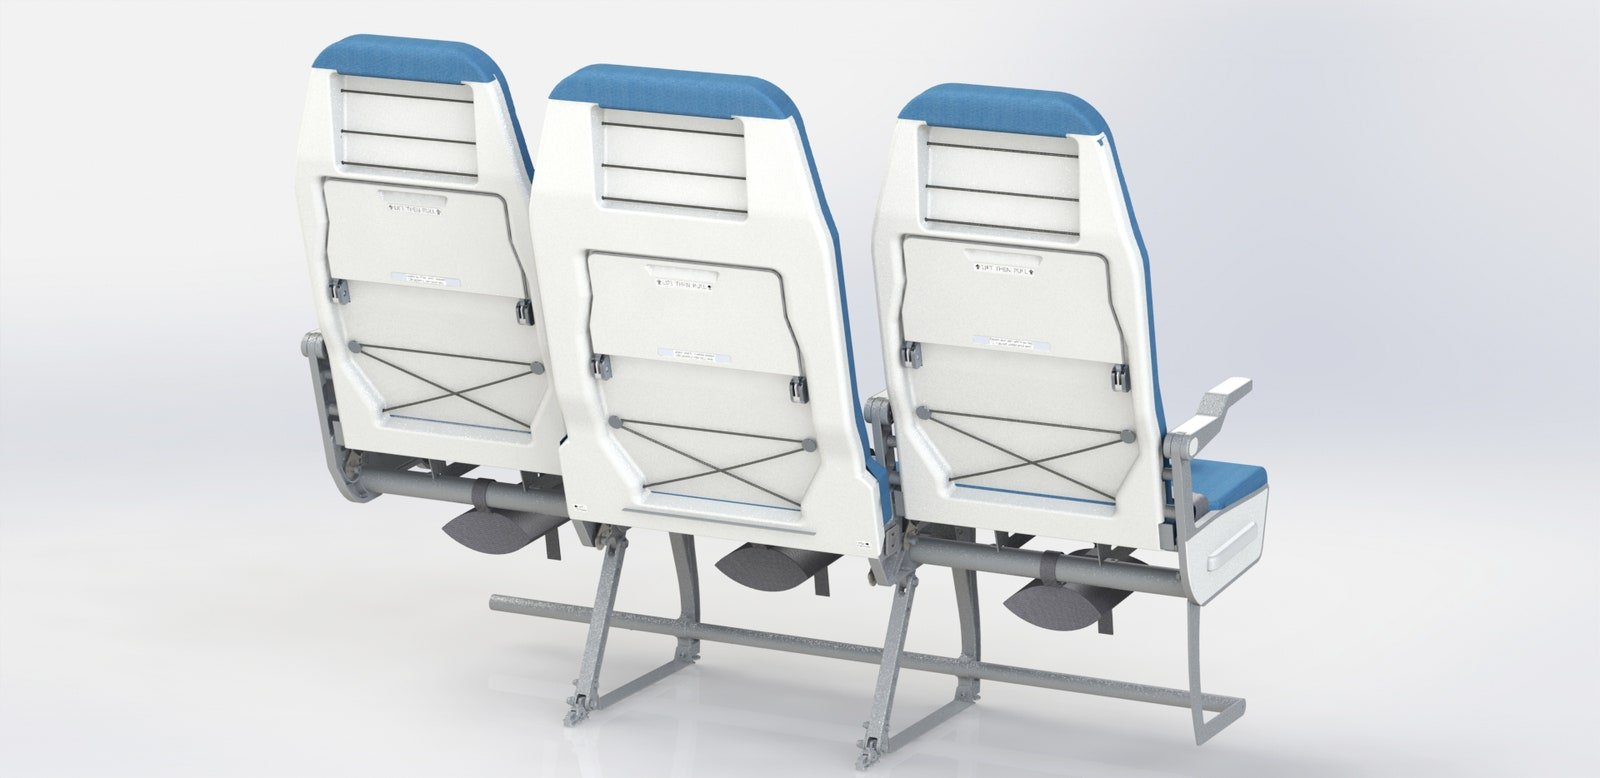 The seats, made mostly of aluminum, weigh less than 20 pounds, important in planes that defy gravity.